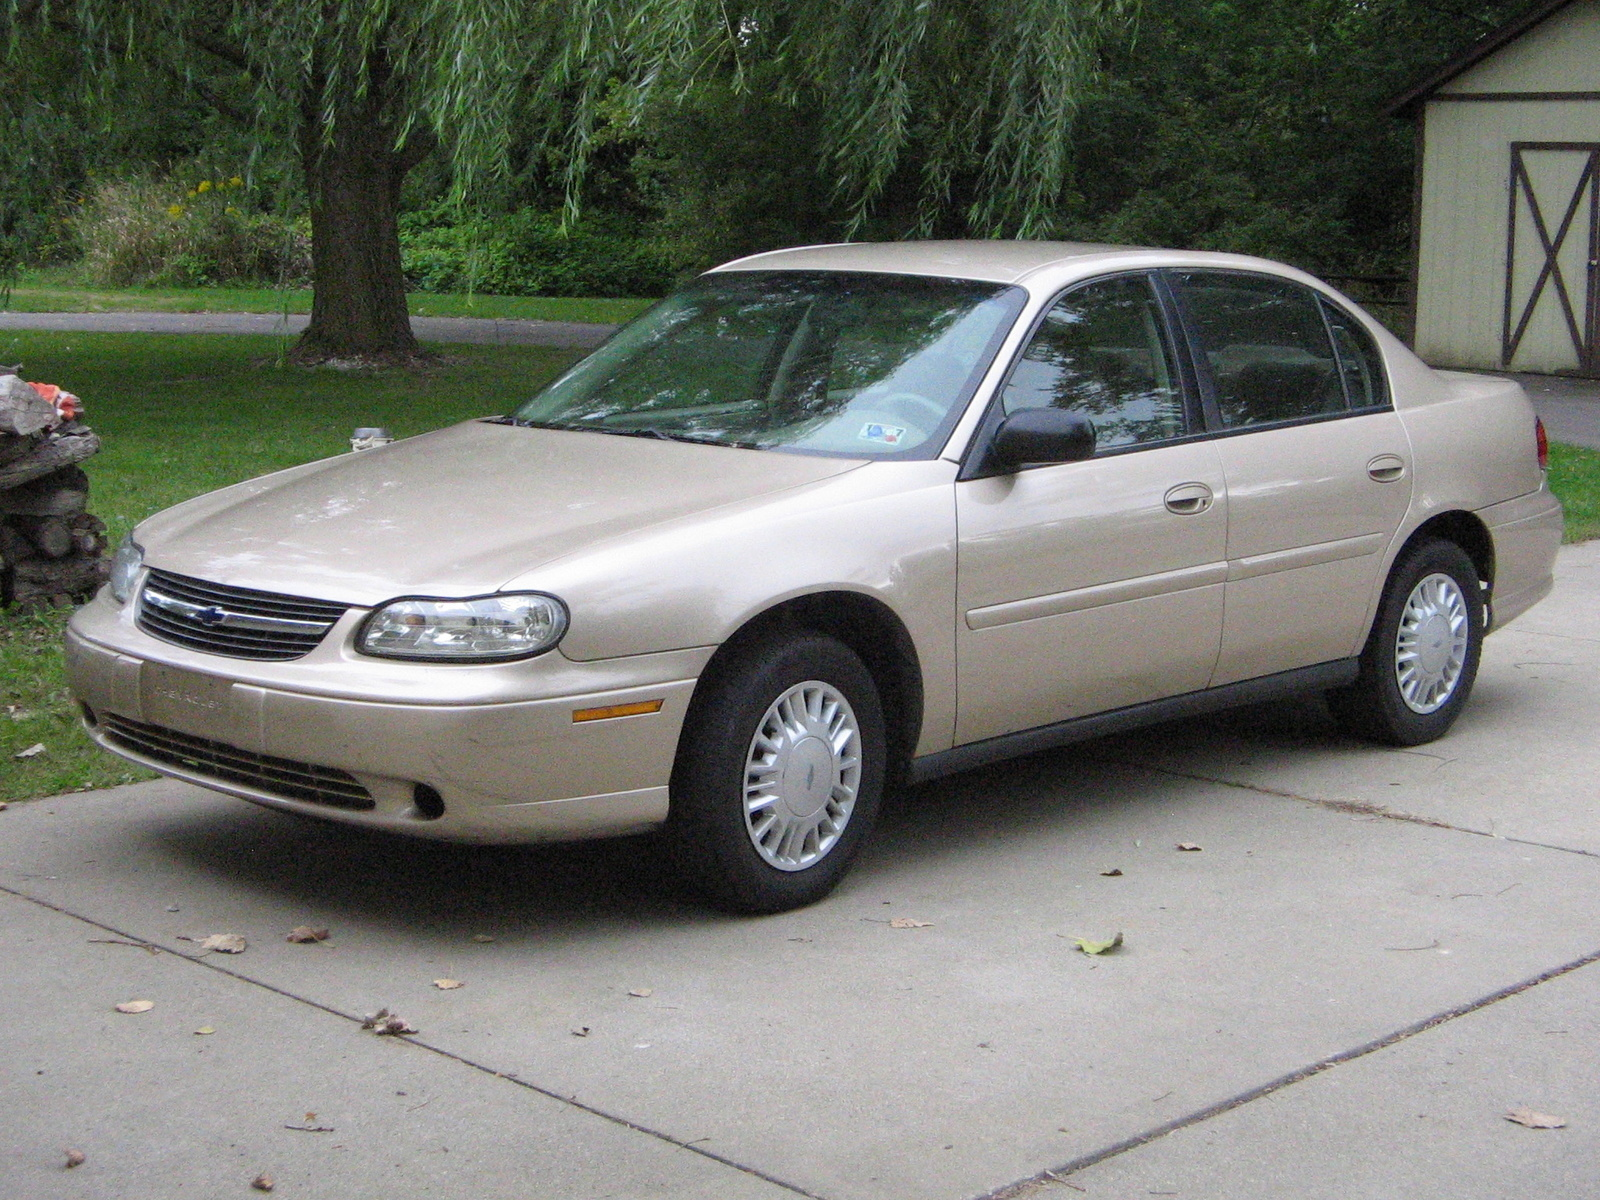 Picture of 2003 chevrolet malibu base exterior gallery_worthy